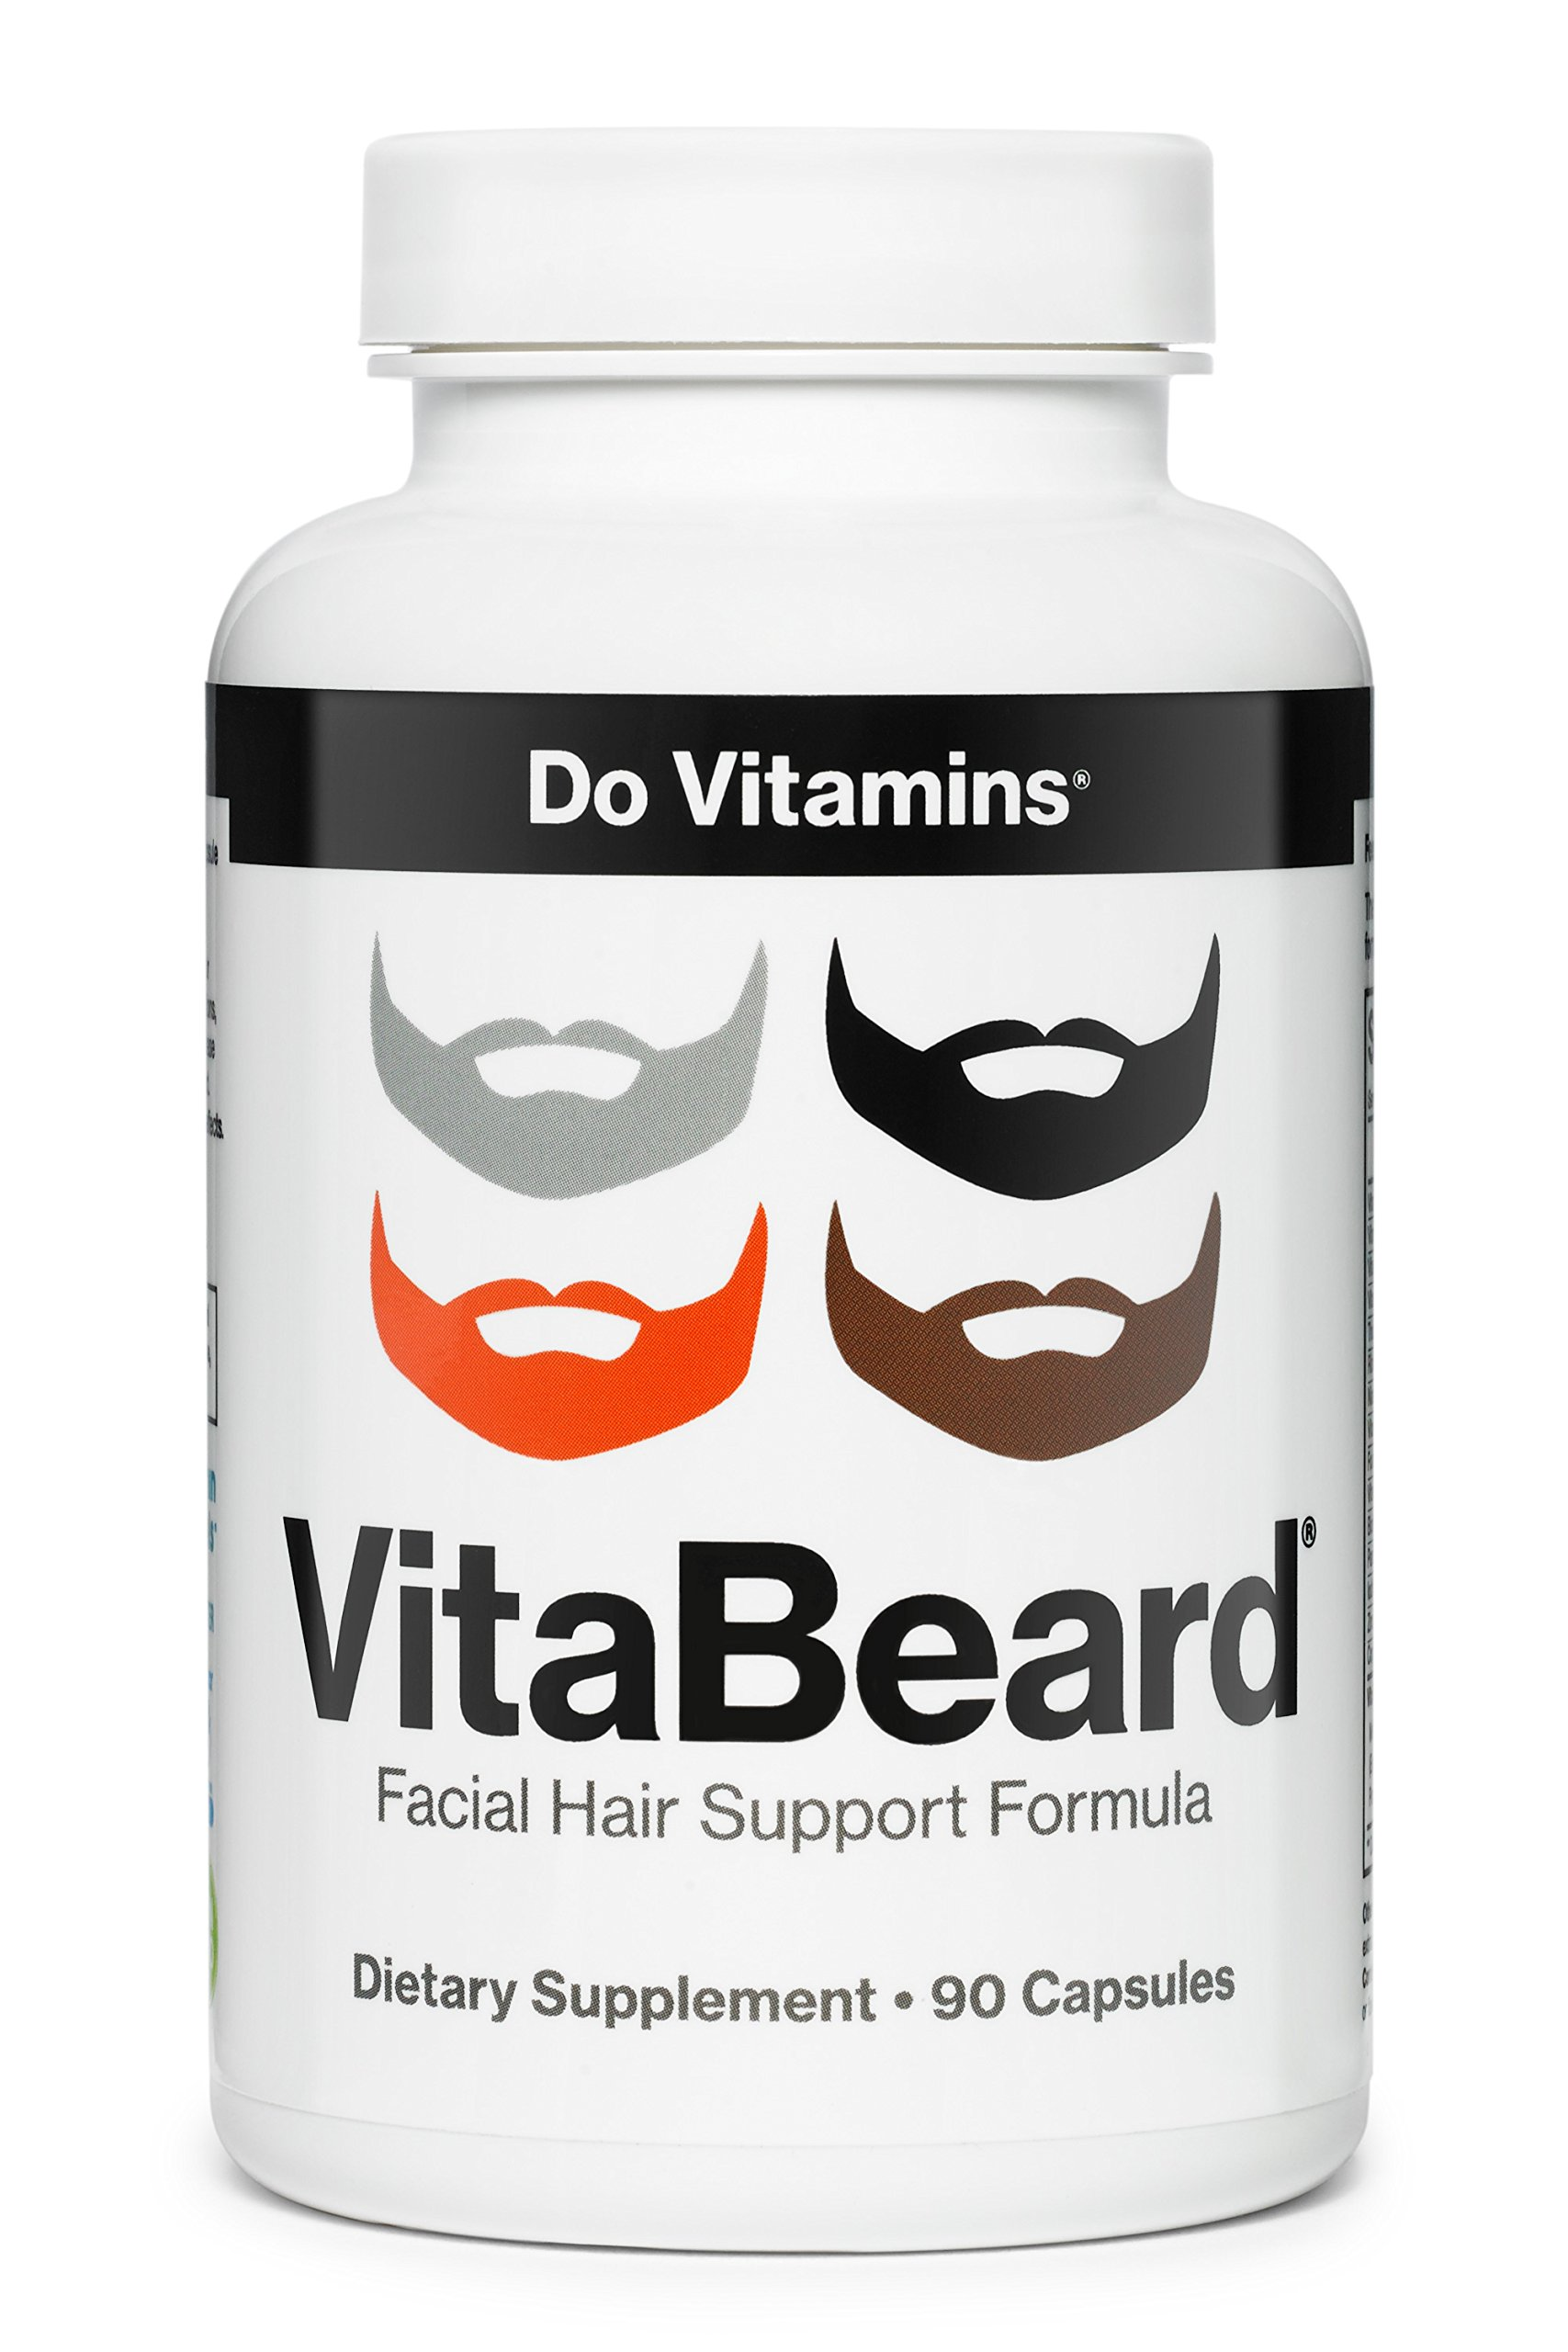 VitaBeard - Beard Growth Supplements For Men - Facial Hair Growth For Men - Beard Vitamins - The Original Beard Growth Formula - Vegan, Non-GMO, 3rd Party Tested (90 Capsules)